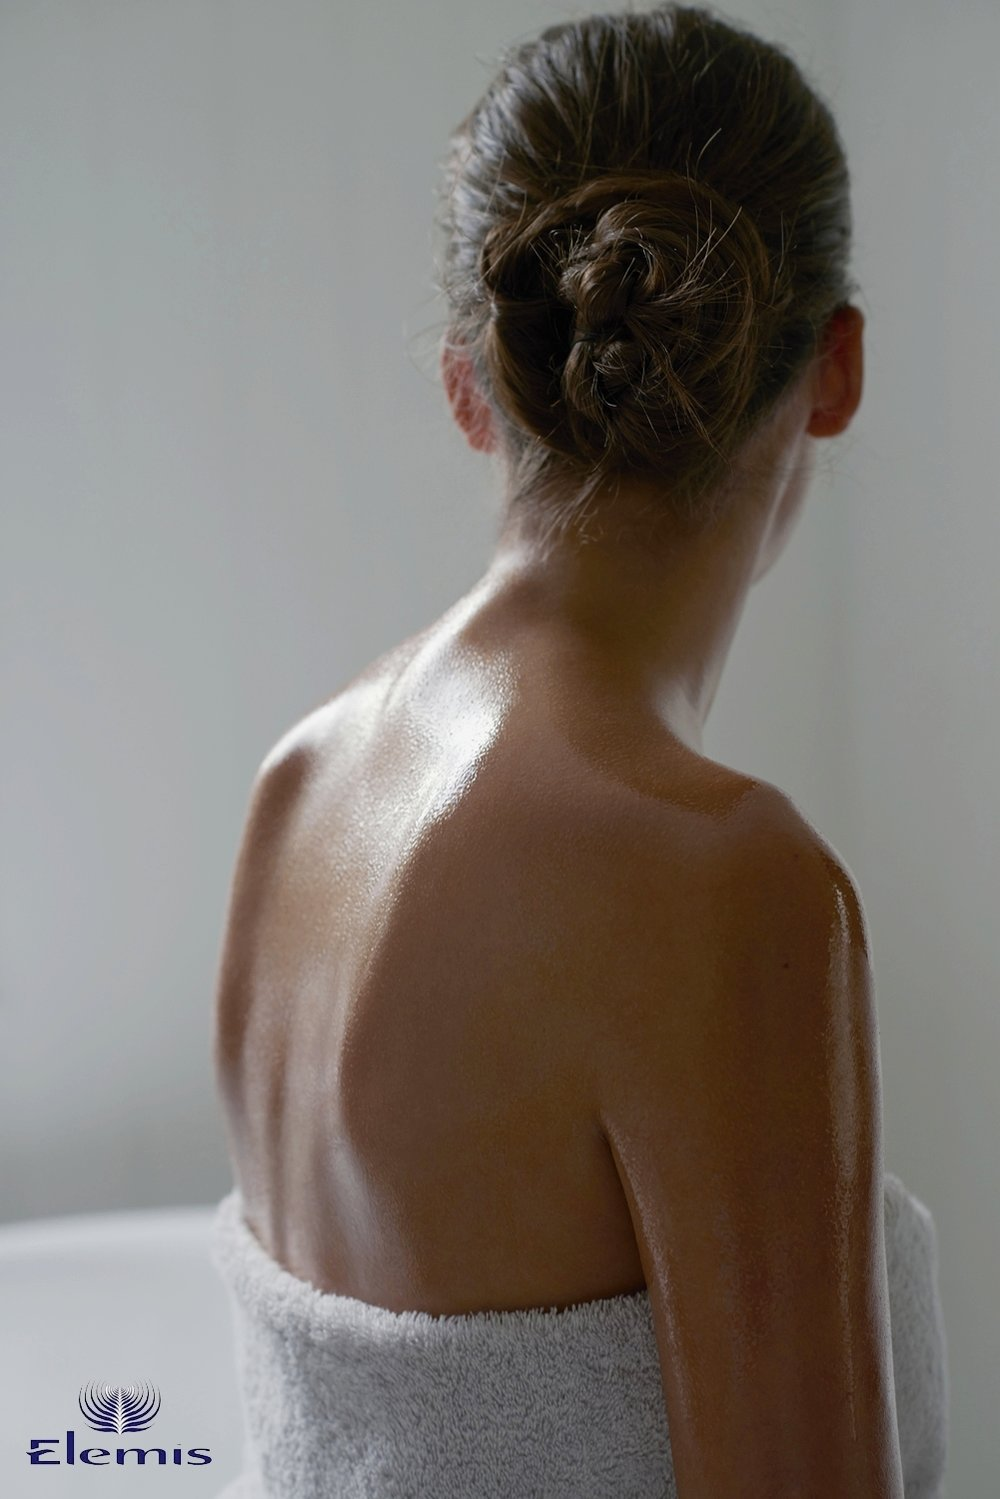 07_Dec14_elemis_bodymoisturising_073_v4 copy.jpg